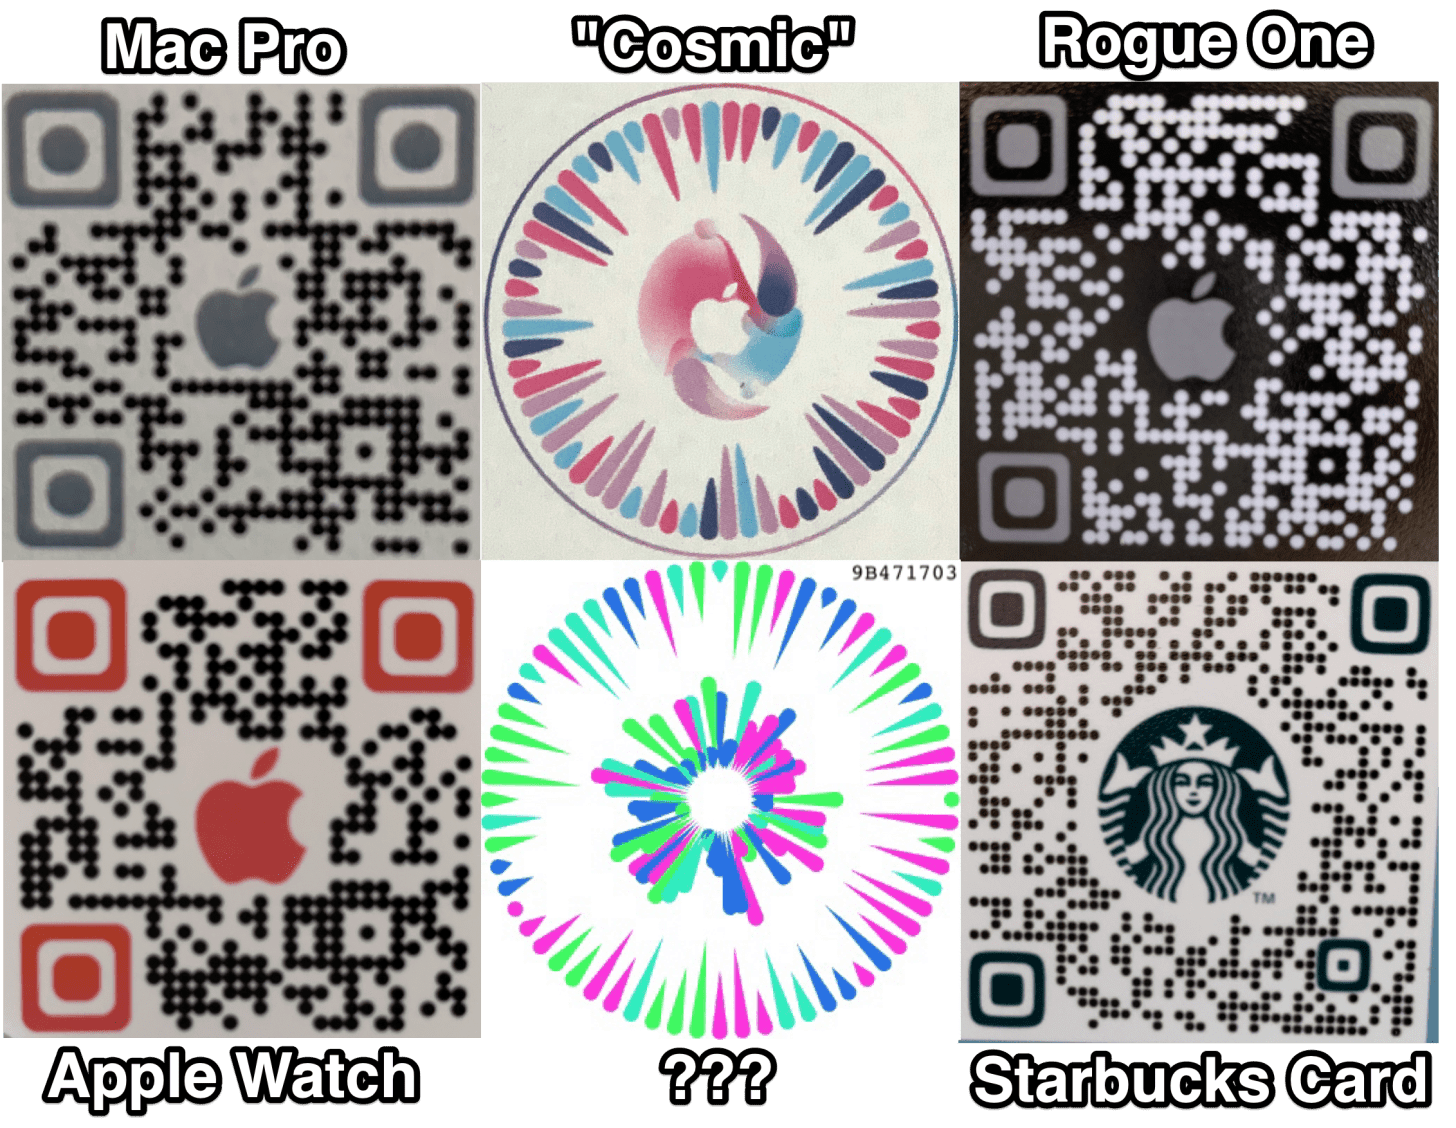 Apple proposed QR codes